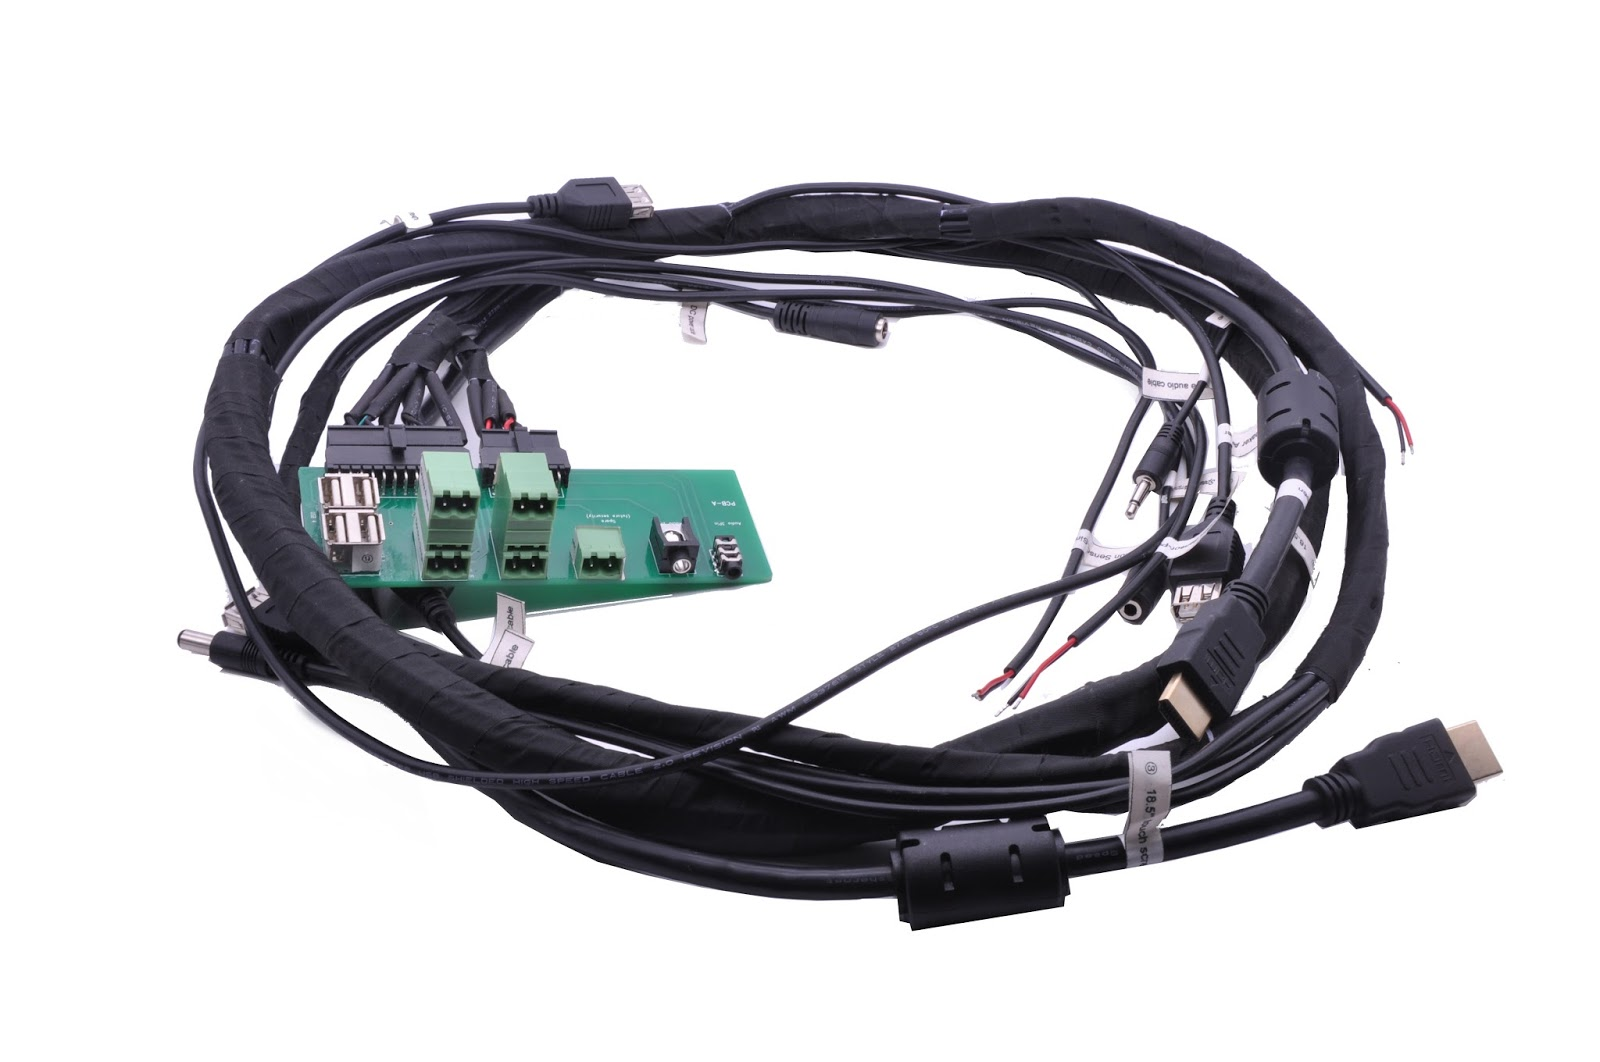 Connector Cable Assemblies and Wire Harness Manufacturing Expert